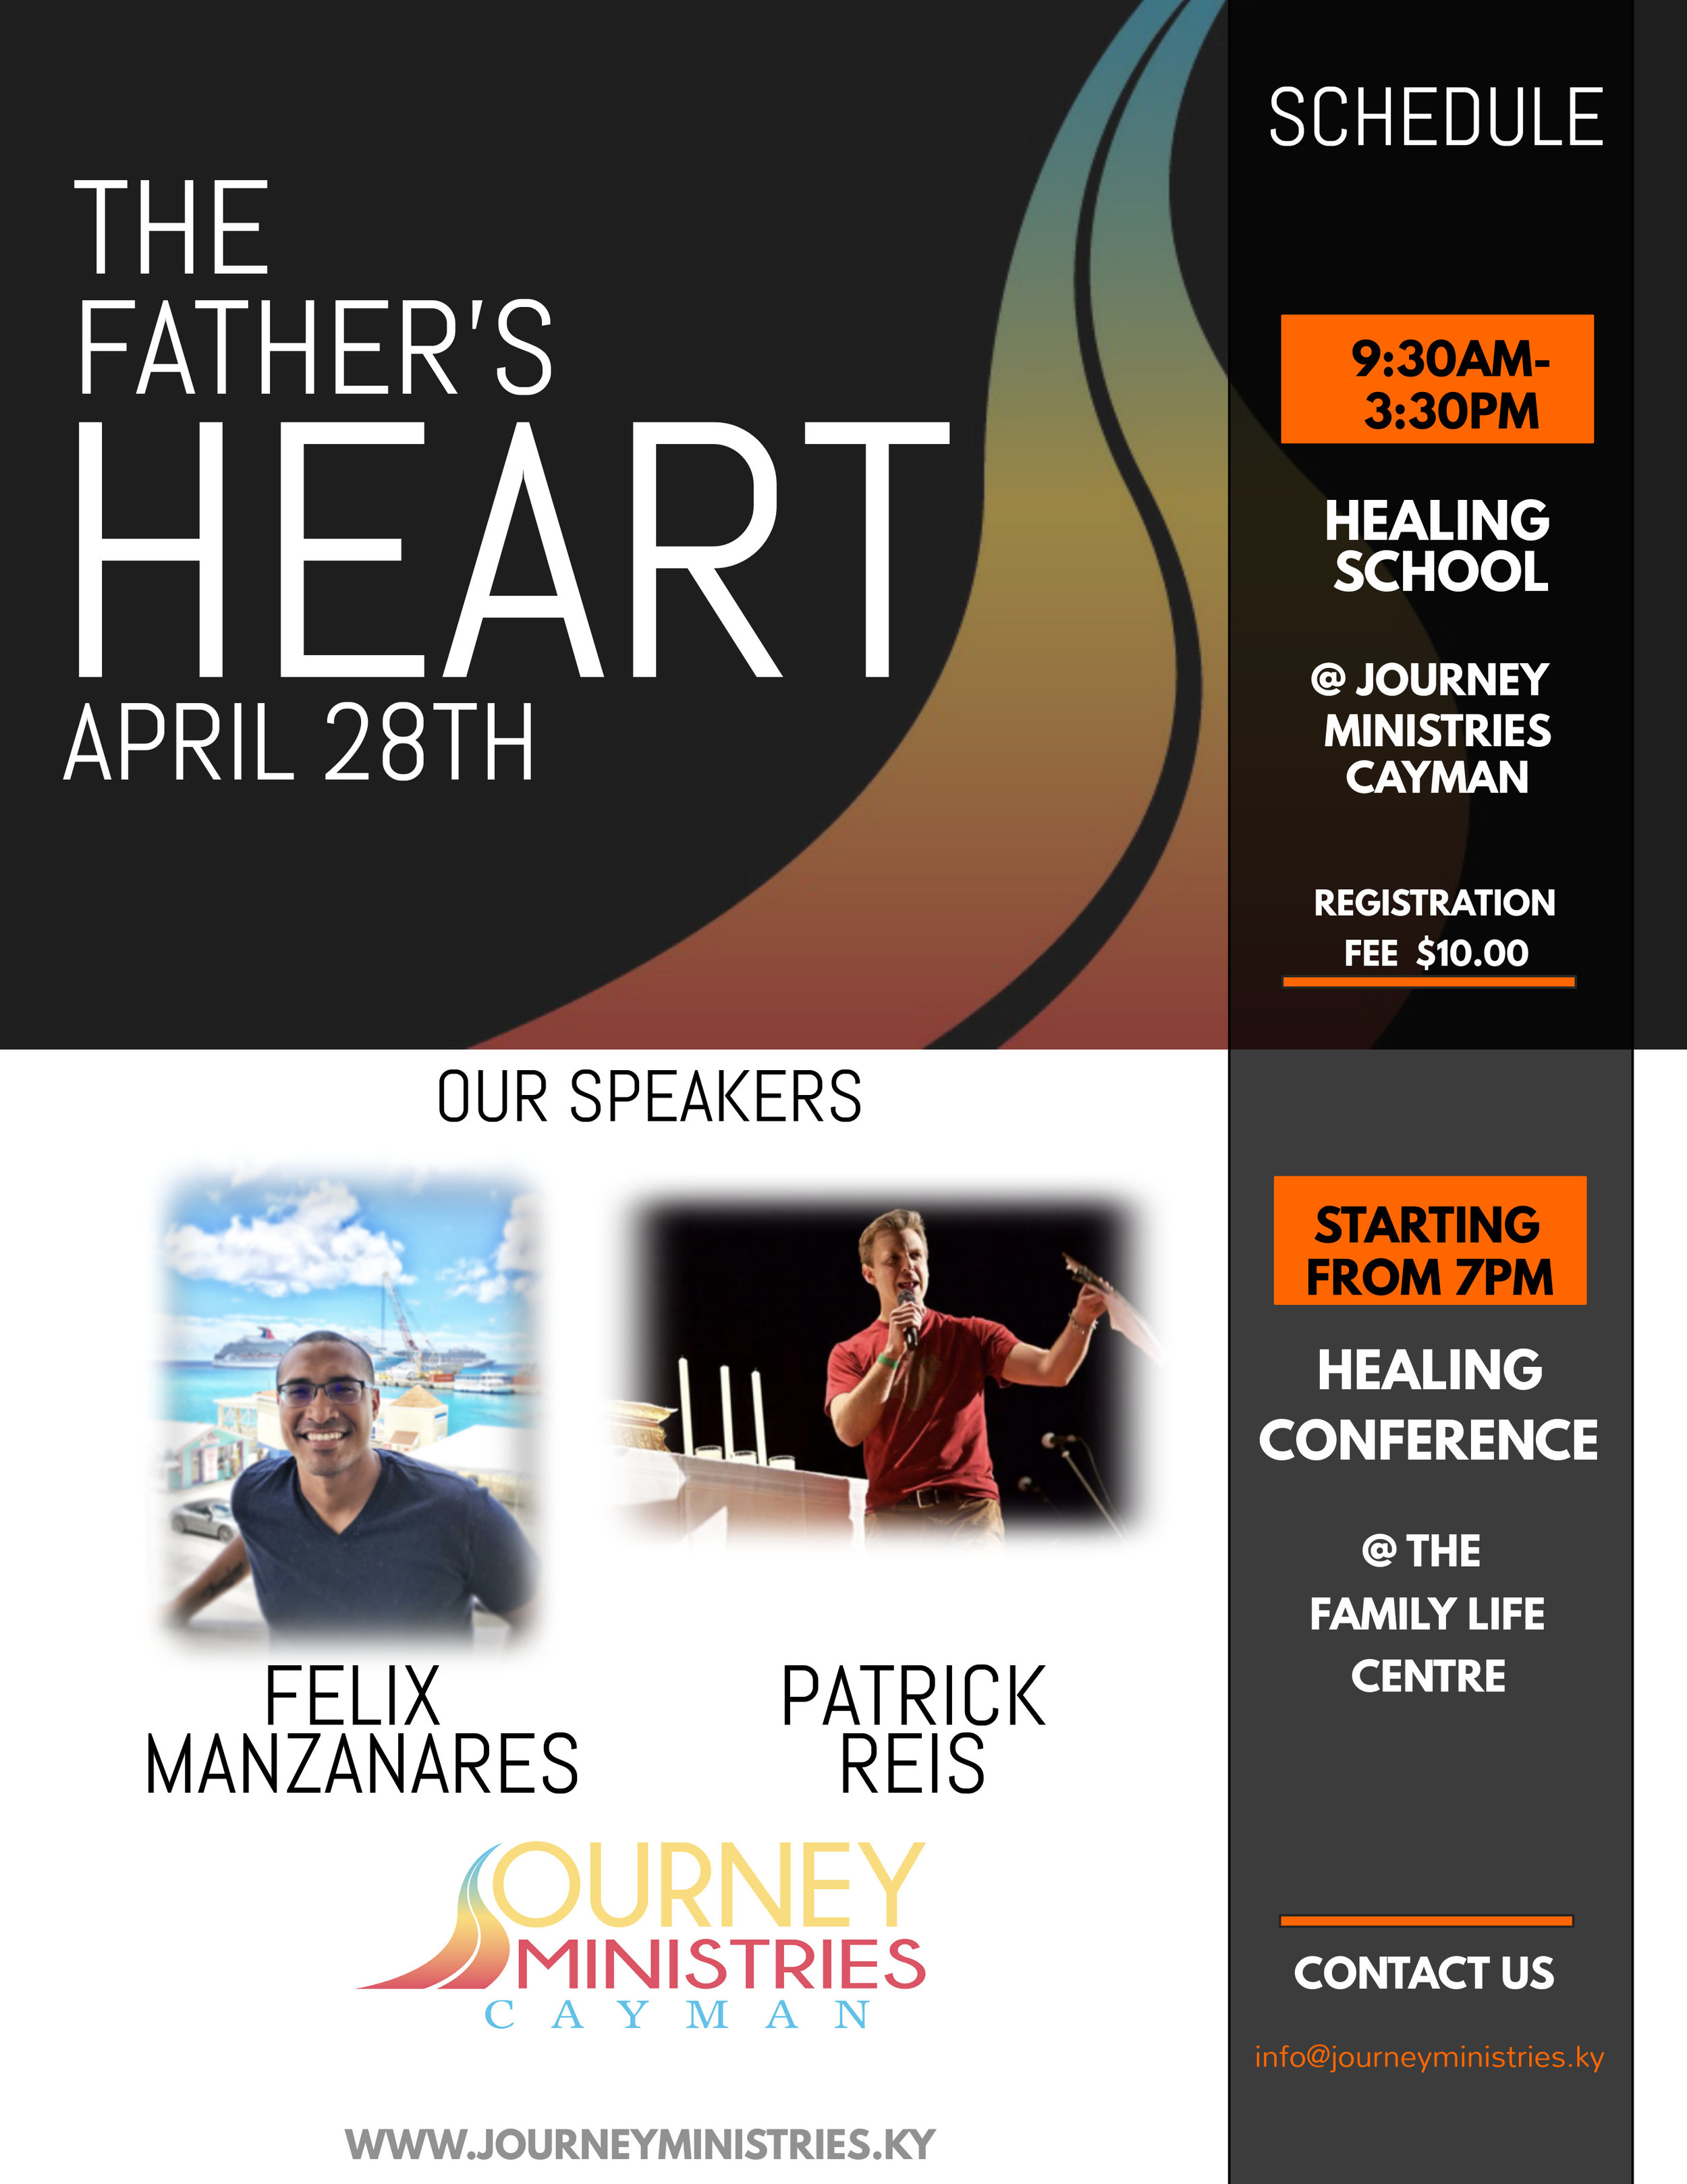 The Father's Heart Healing School and Conference (April 28th)